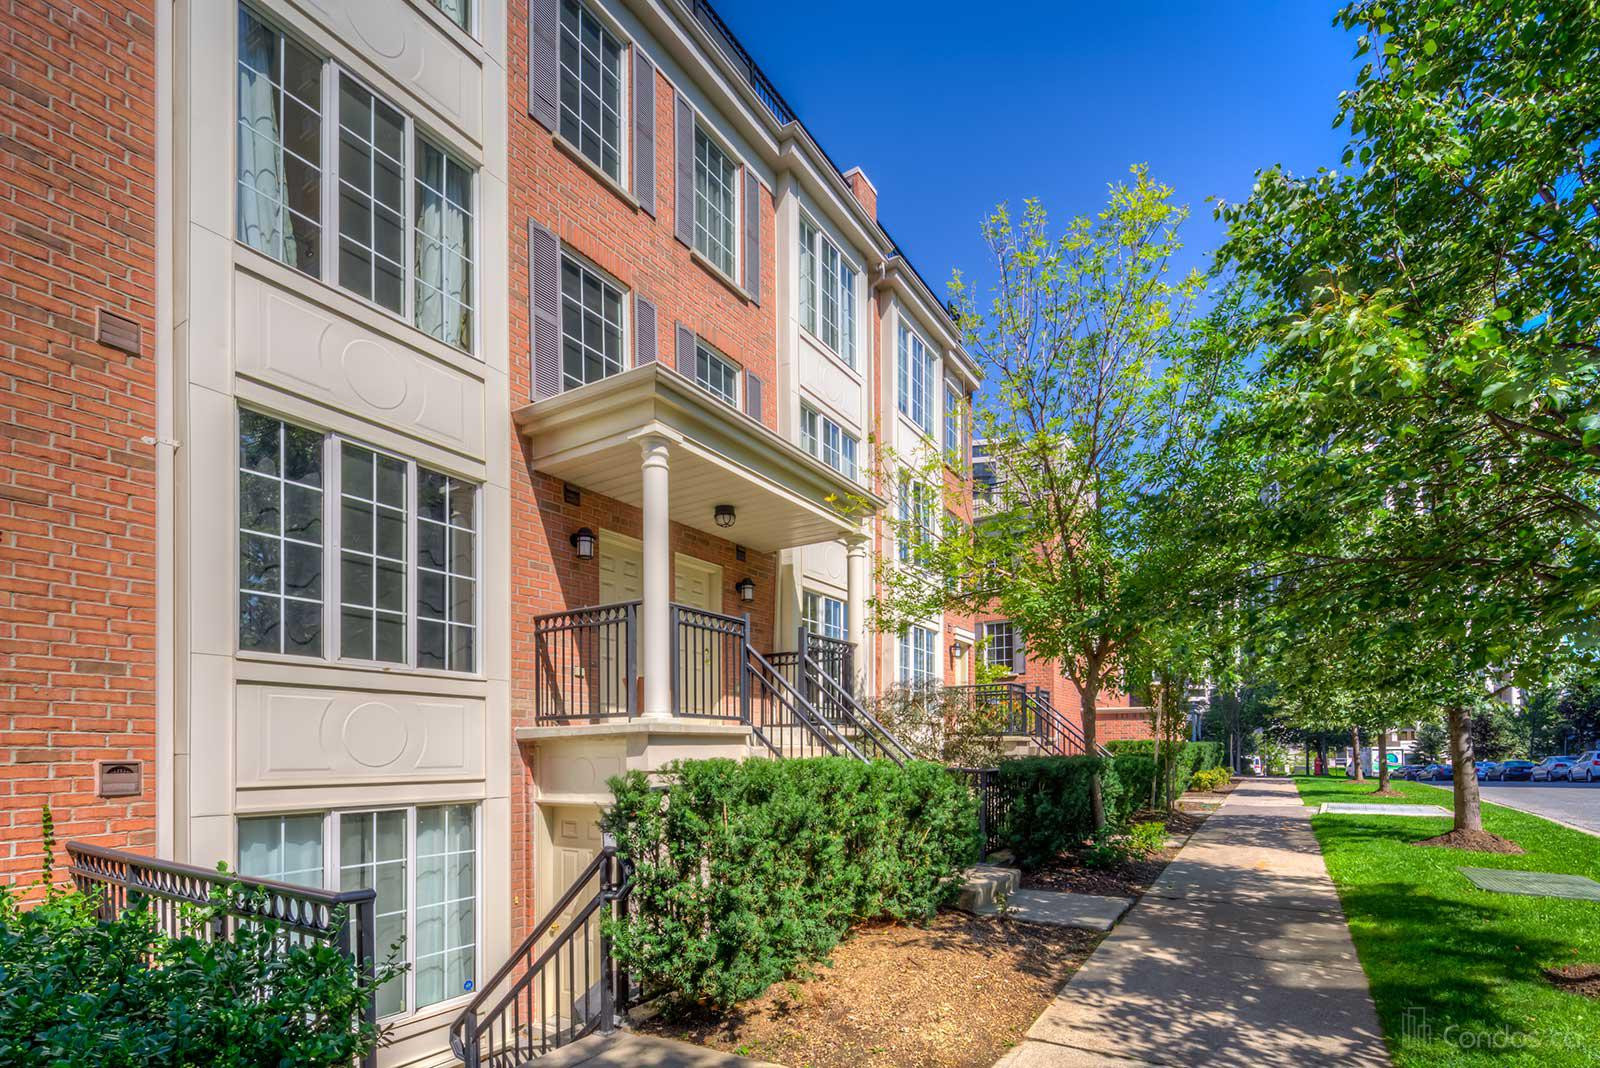 Everson Townhomes at 3 Everson Dr, Toronto 1